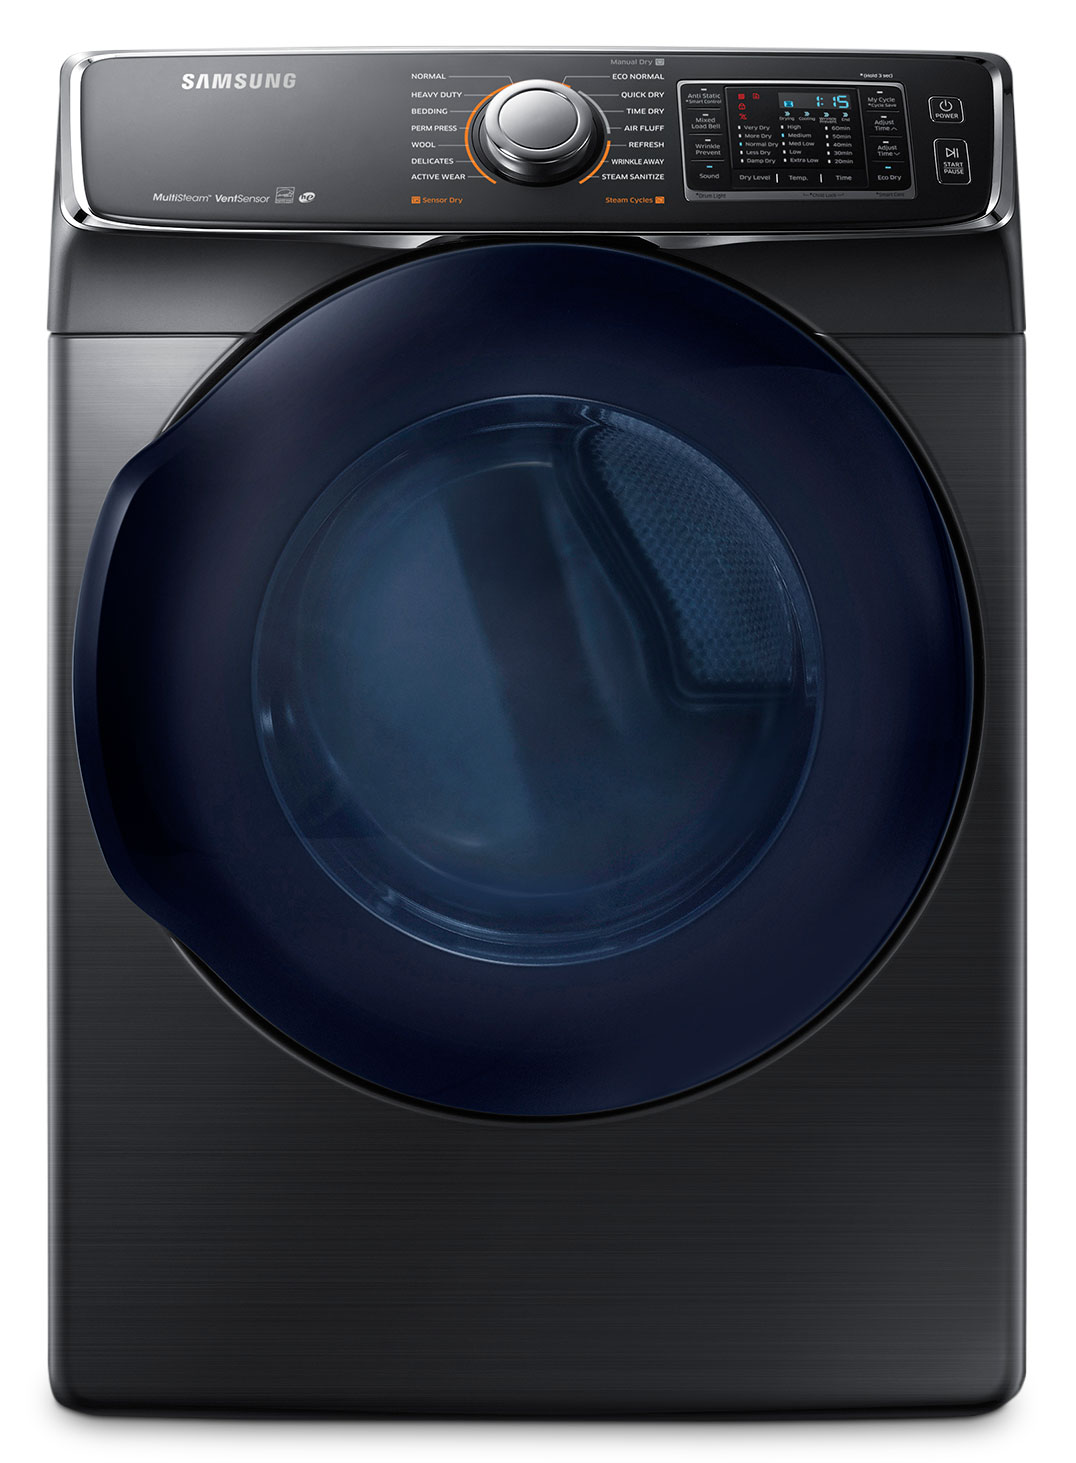 Samsung 7.5 Cu. Ft. Electric Dryer – Black Stainless Steel DV45K6500EV/AC